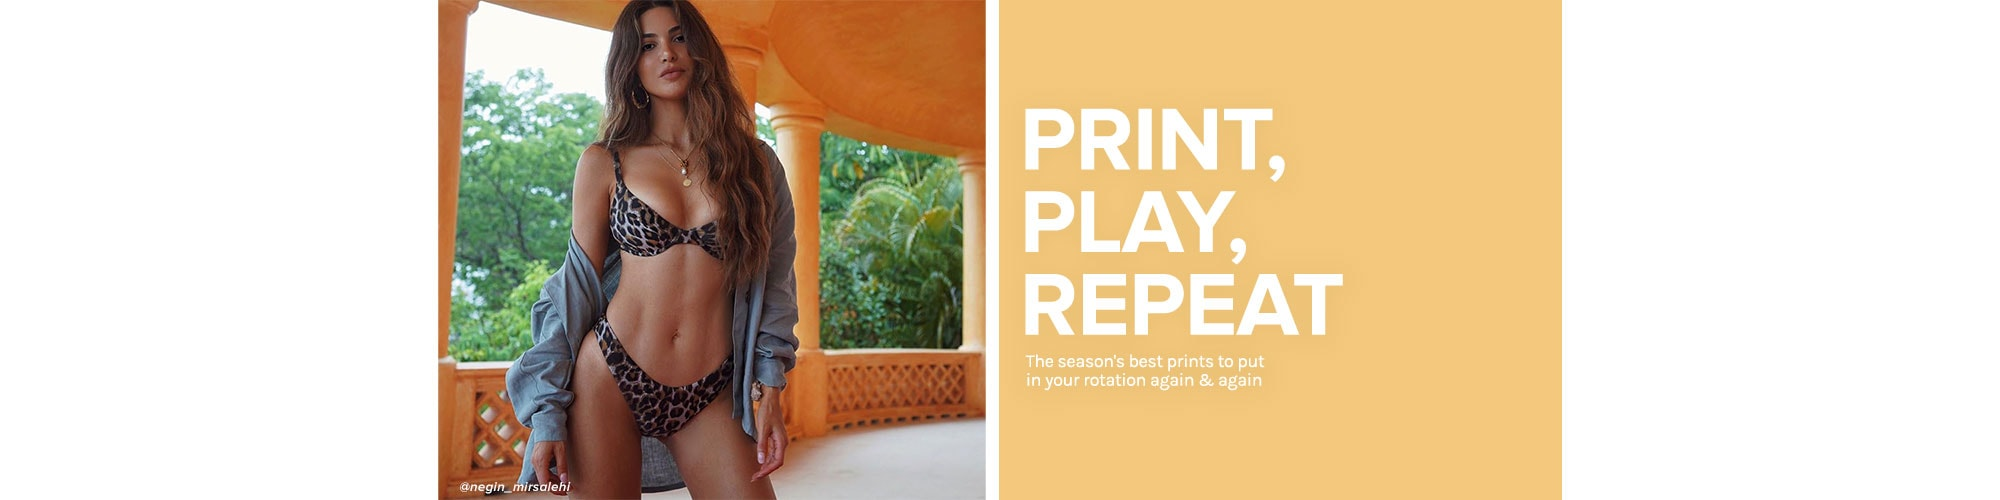 Print, Play, Repeat. The season\'s best prints to put in your rotation again & again.